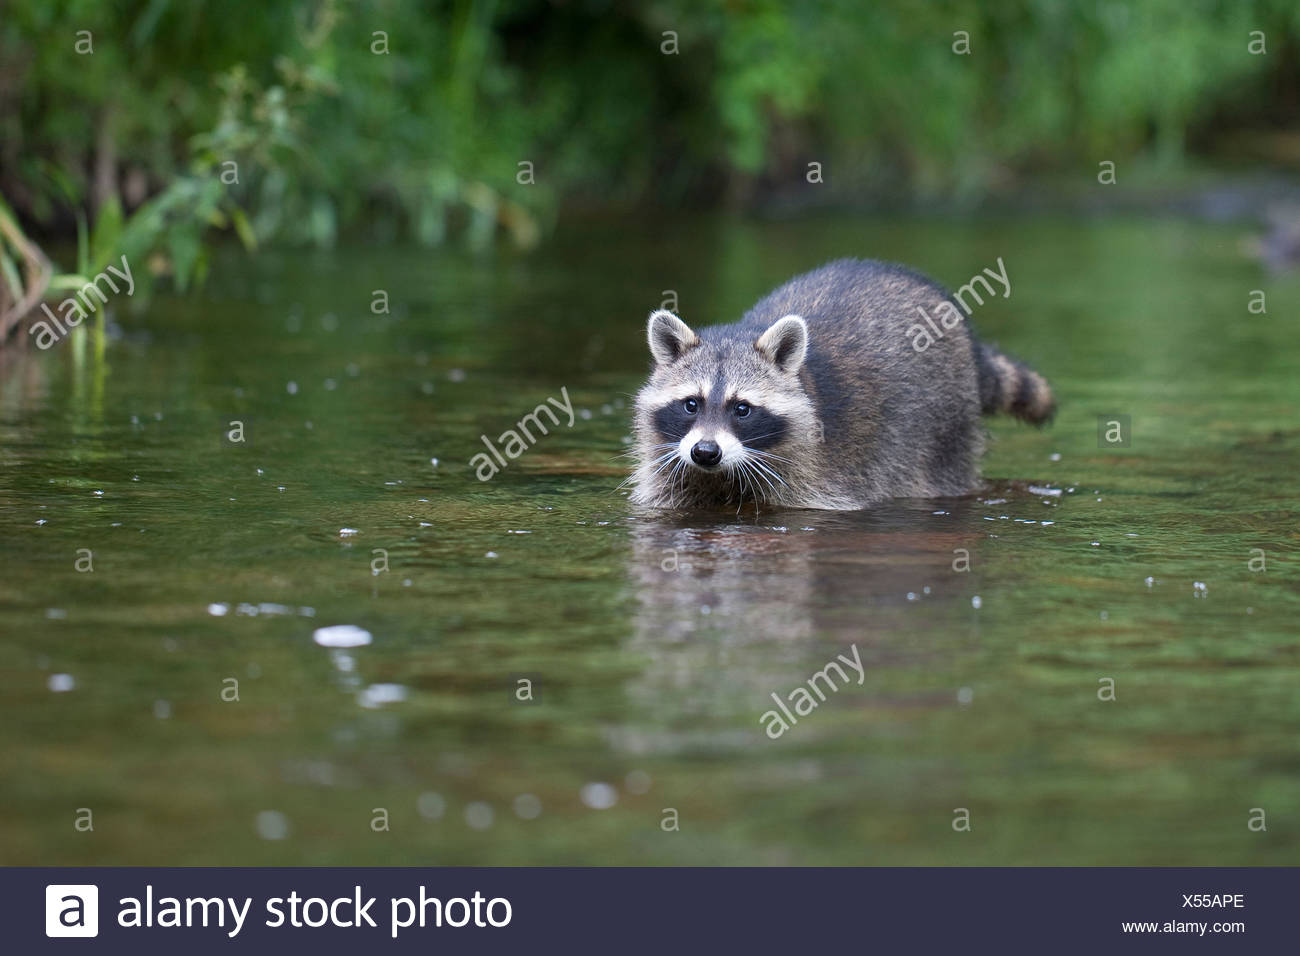 common raccoon (Procyon lotor), 4 months old male walking in the creek, Germany - Stock Image